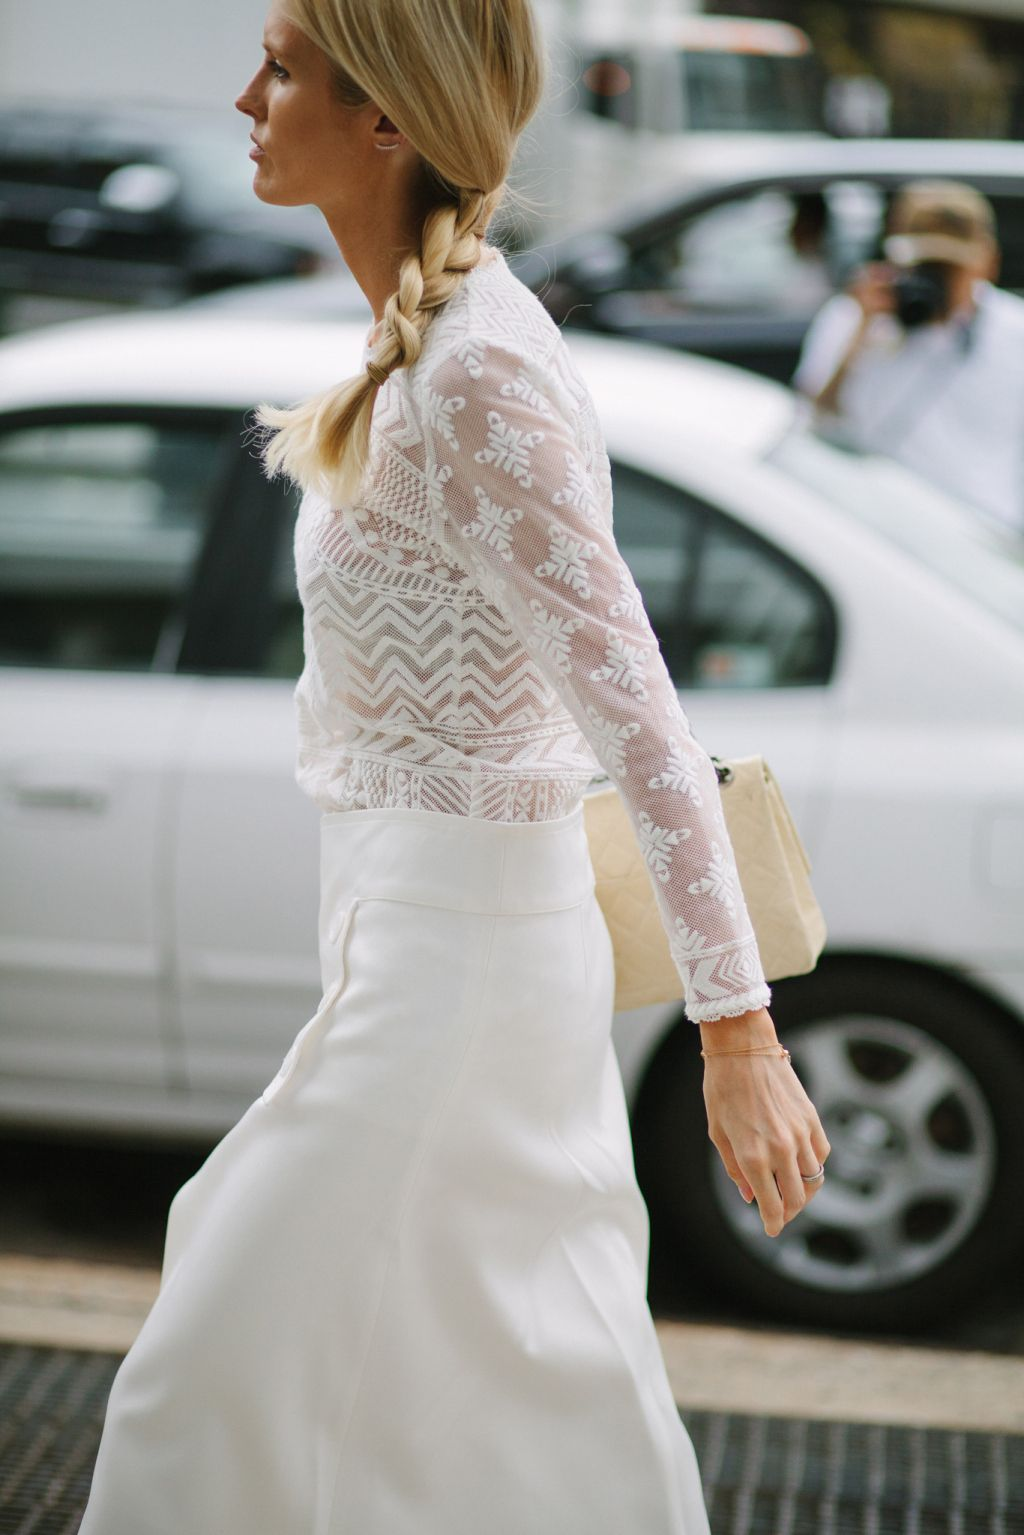 #streetstyle #fashion #trends2015 #fashionstyle   http://www.bykoket.com/inspirations/category/trends/fashion